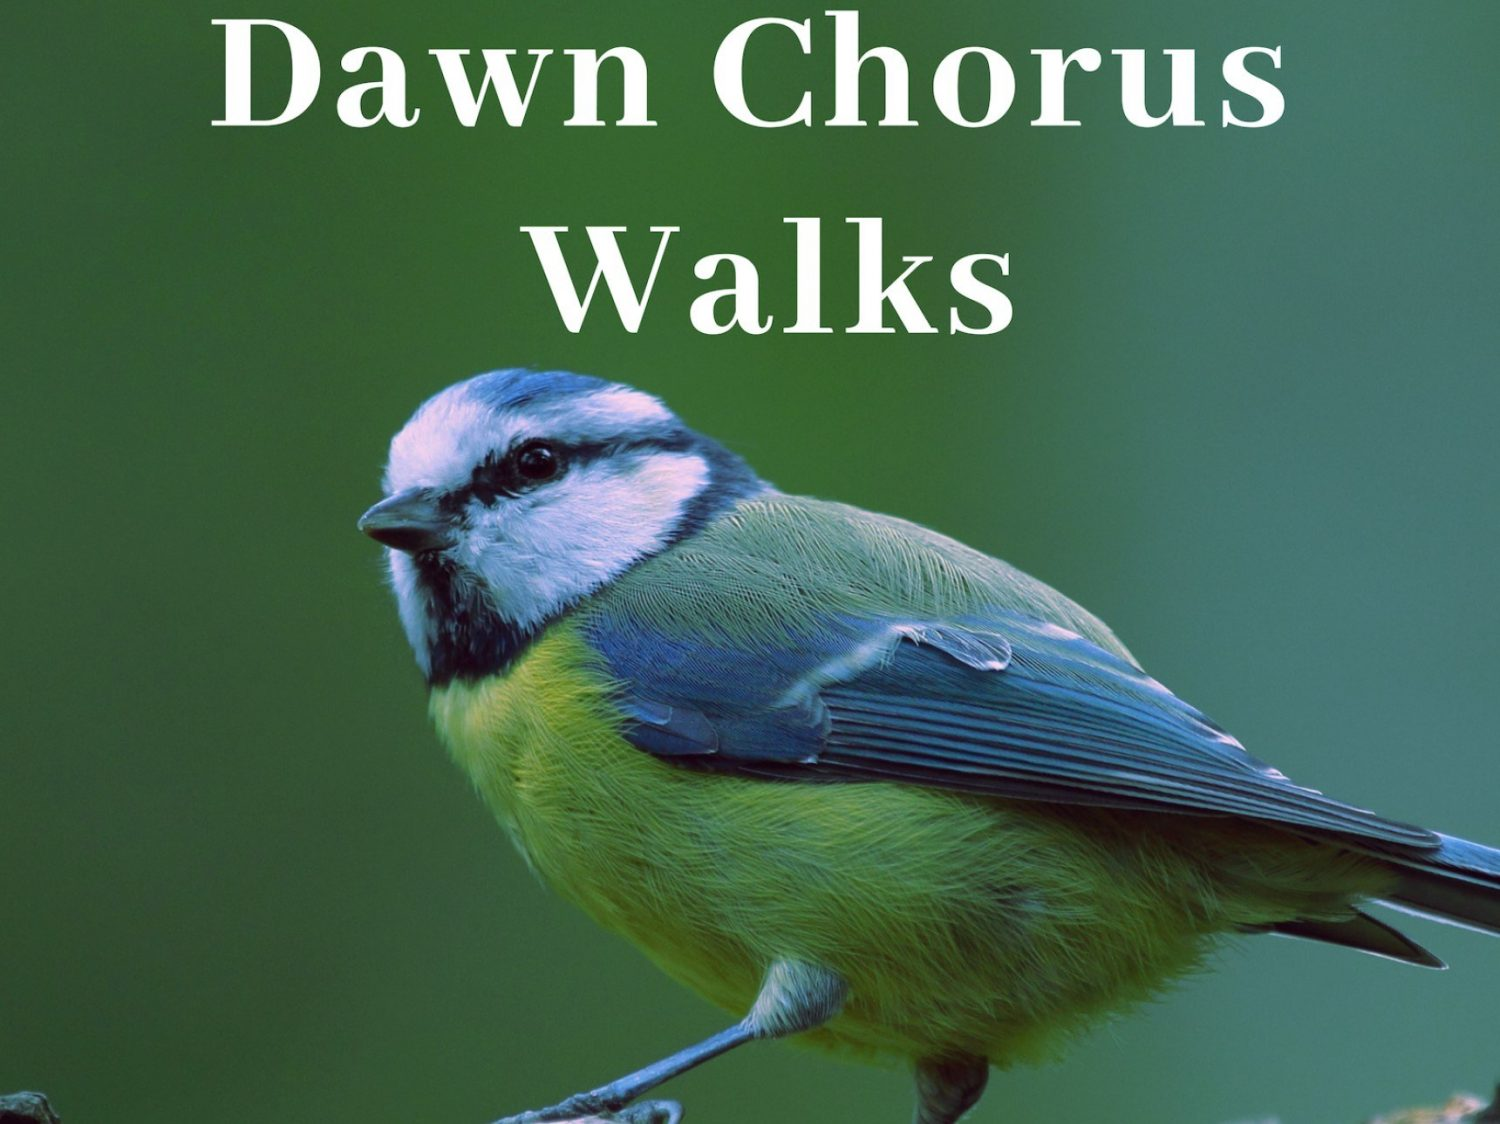 Dawn Chorus Walks at Sudeley Castle